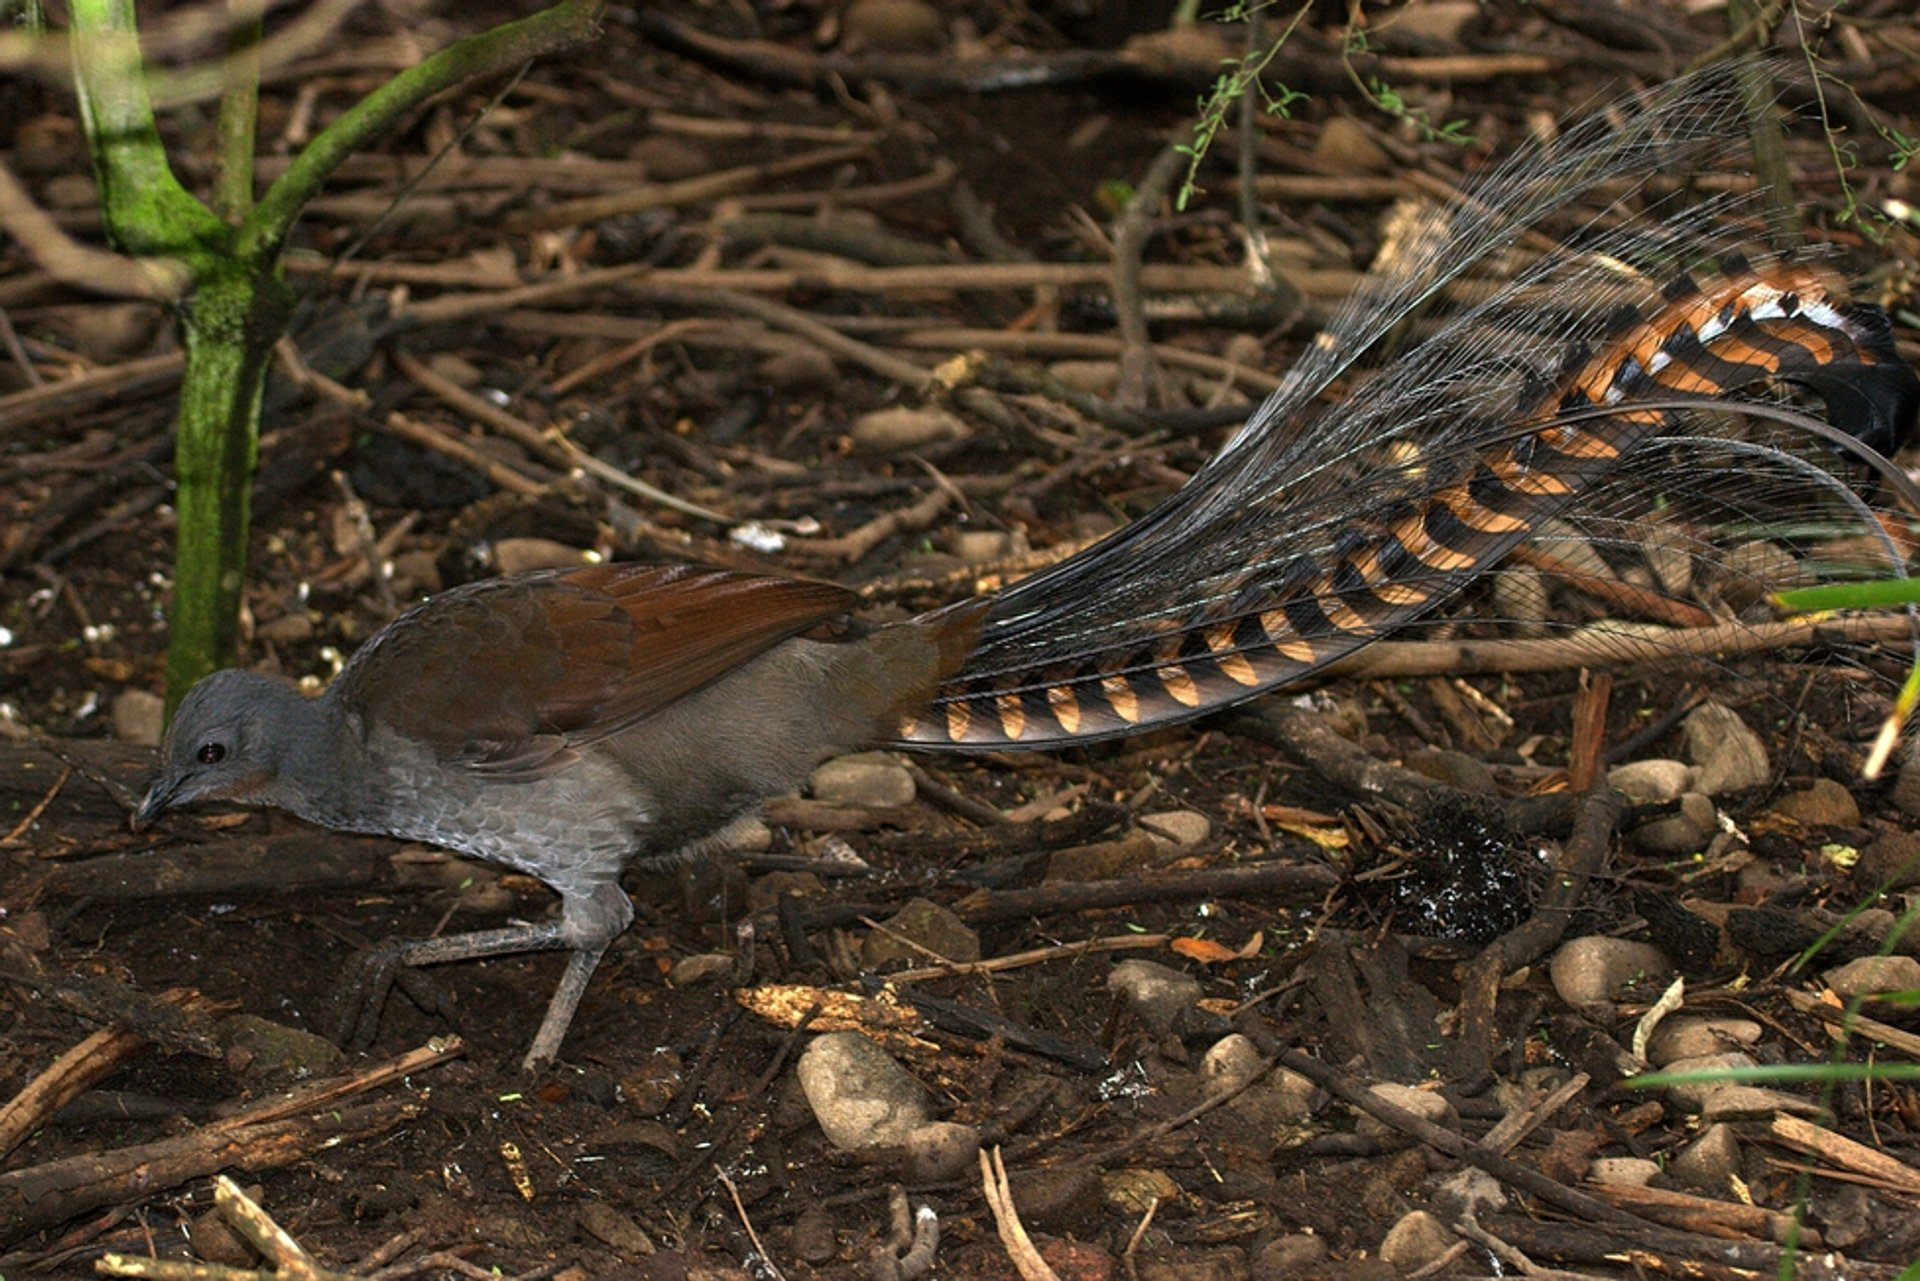 Superb Lyrebird (Menura novaehollandiae), Mt Buffalo, Victoria 2019